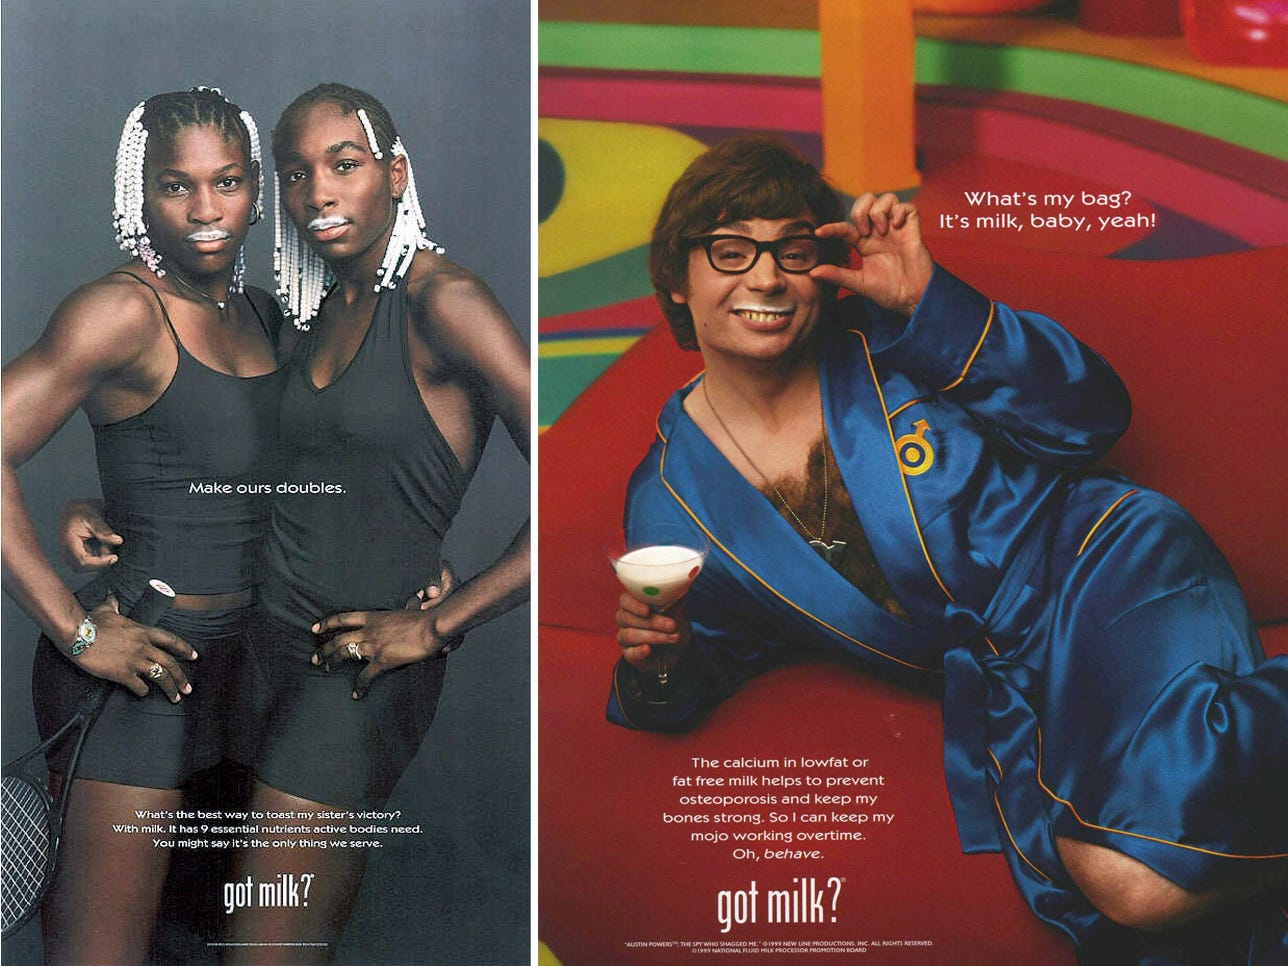 In 1993, the California Milk Processing Board started a campaign to promote milk and kicked-off perhaps one of the most successful and influential marketing efforts. Over the years, the campaign enlisted hundreds of iconic cultural figures, both real and imagined, to pitch milk. The campaign elevated the profile of milk but only slowed the downward trend in milk consumption.